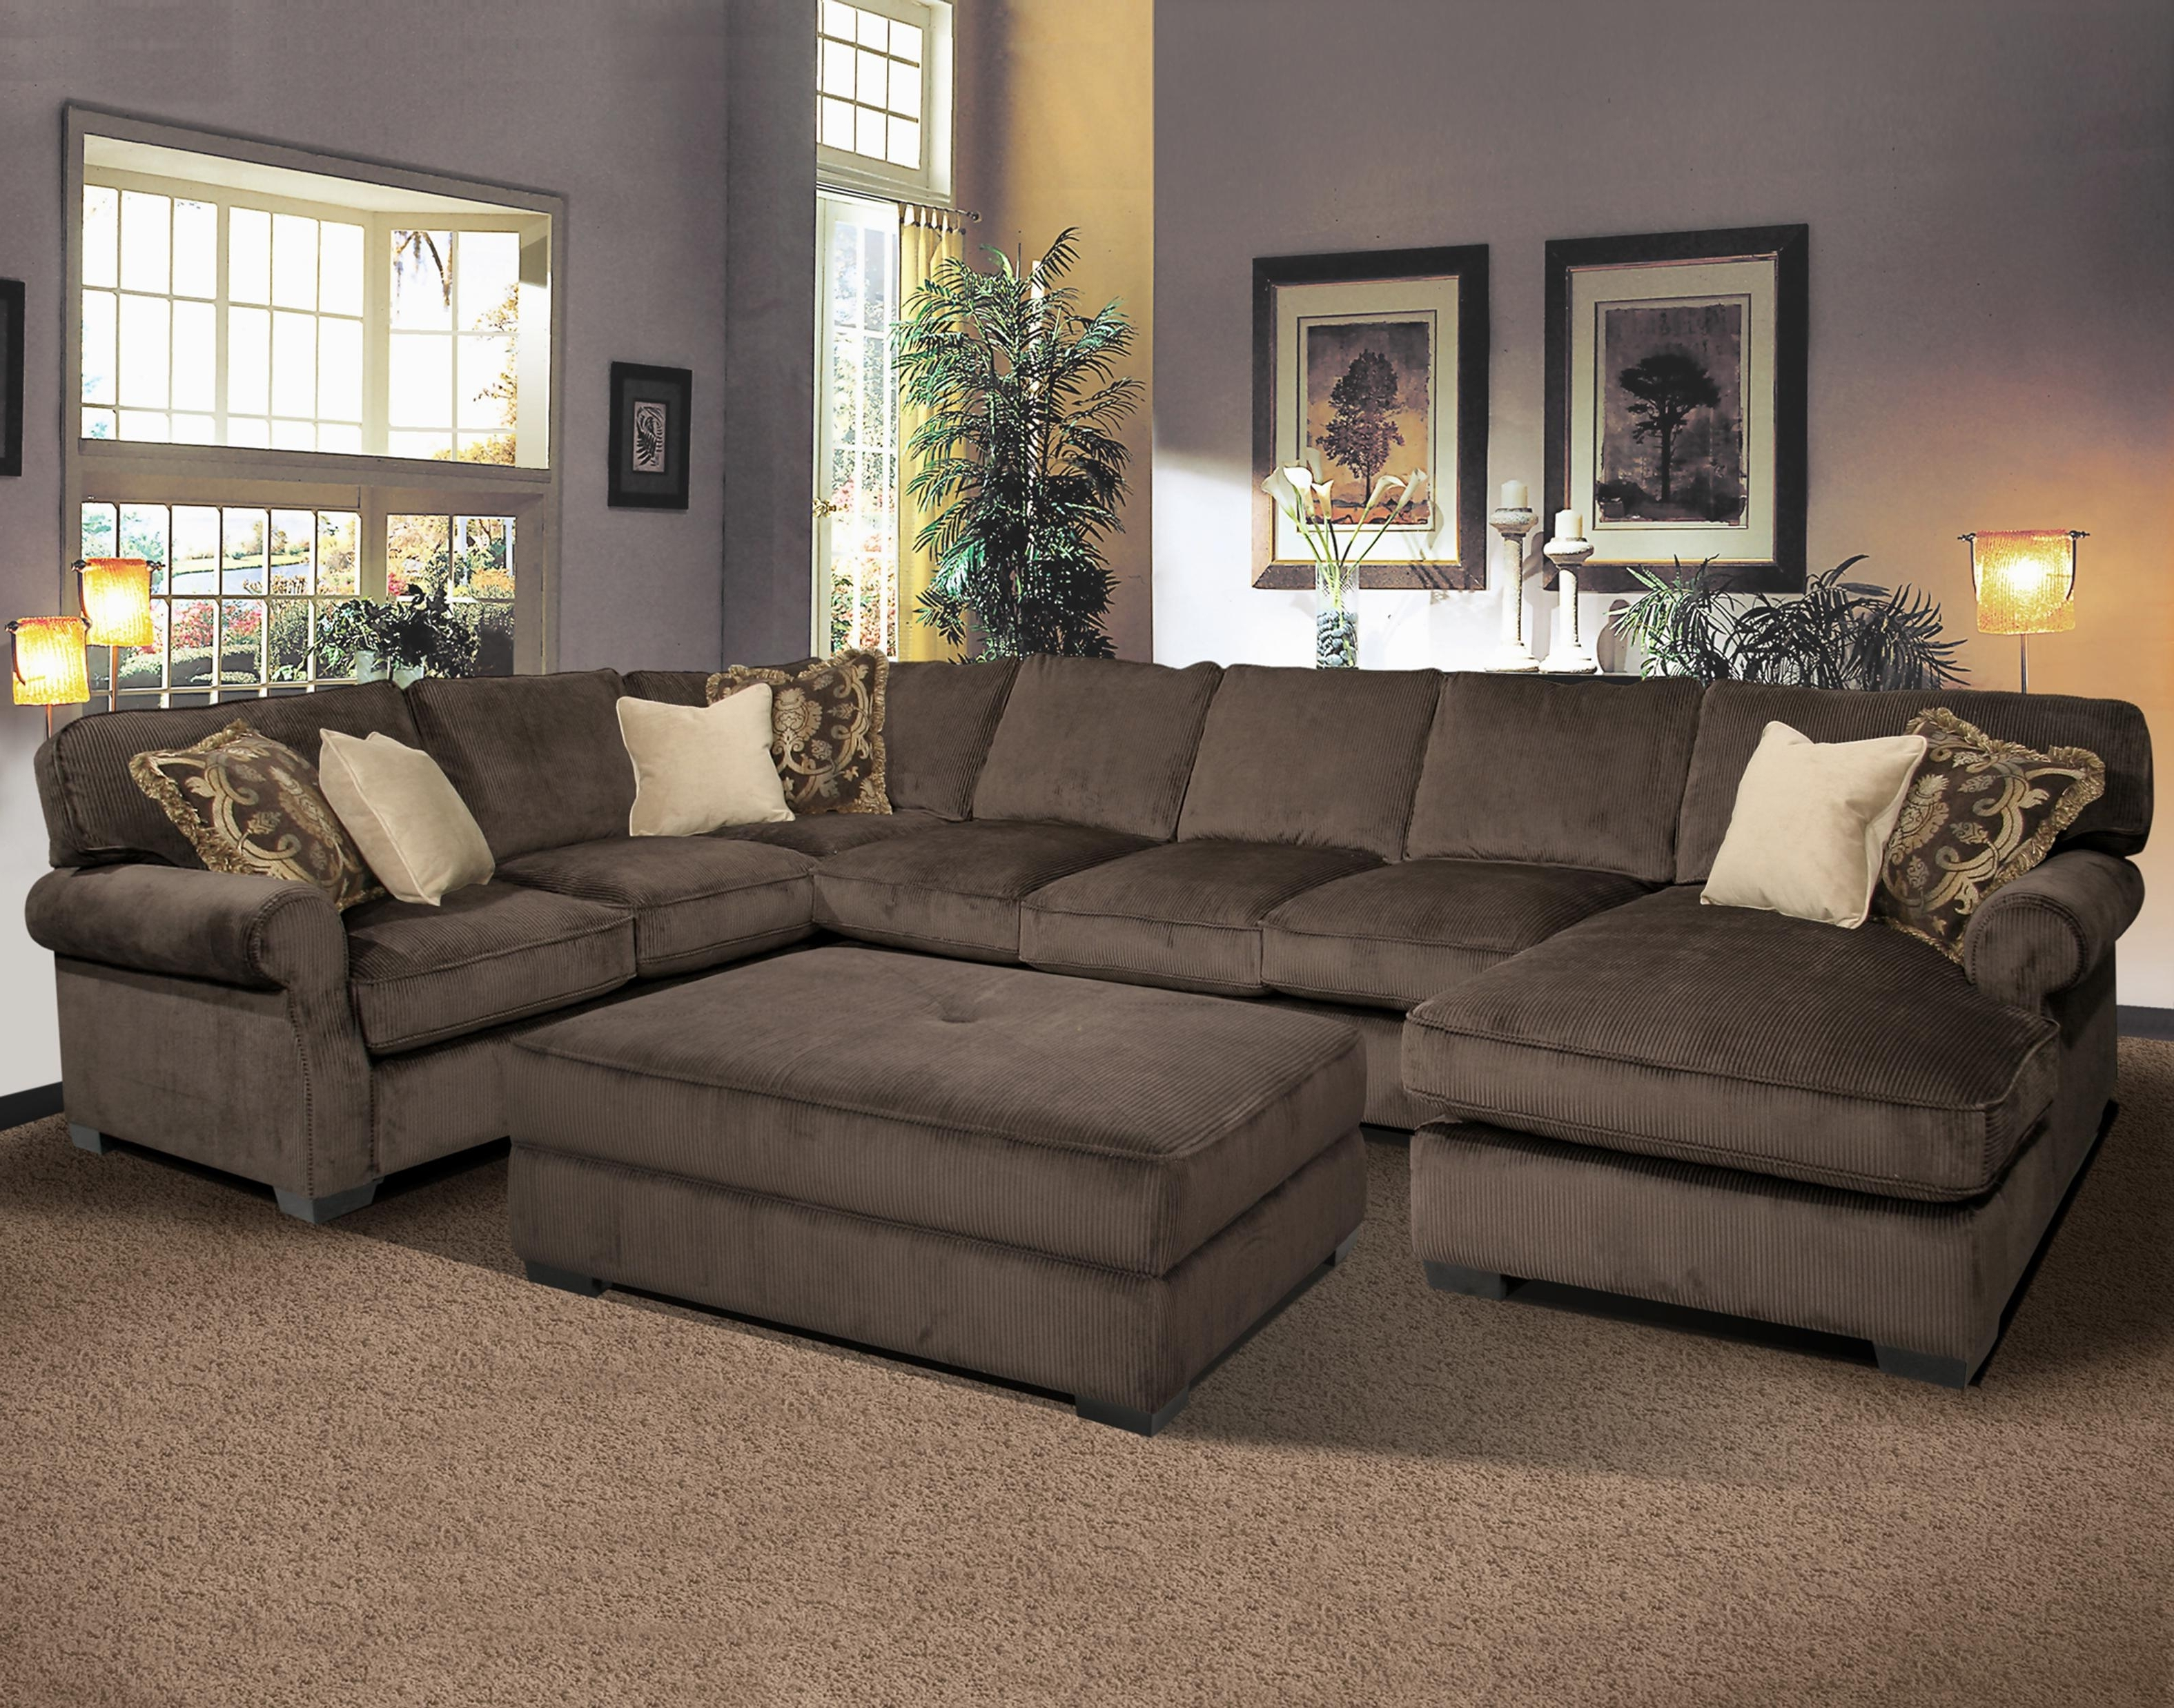 Best And Newest Furniture: Awesome Large U Shaped Sectional Sofas 26 For Your Leather With Regard To Extra Large U Shaped Sectionals (View 8 of 15)